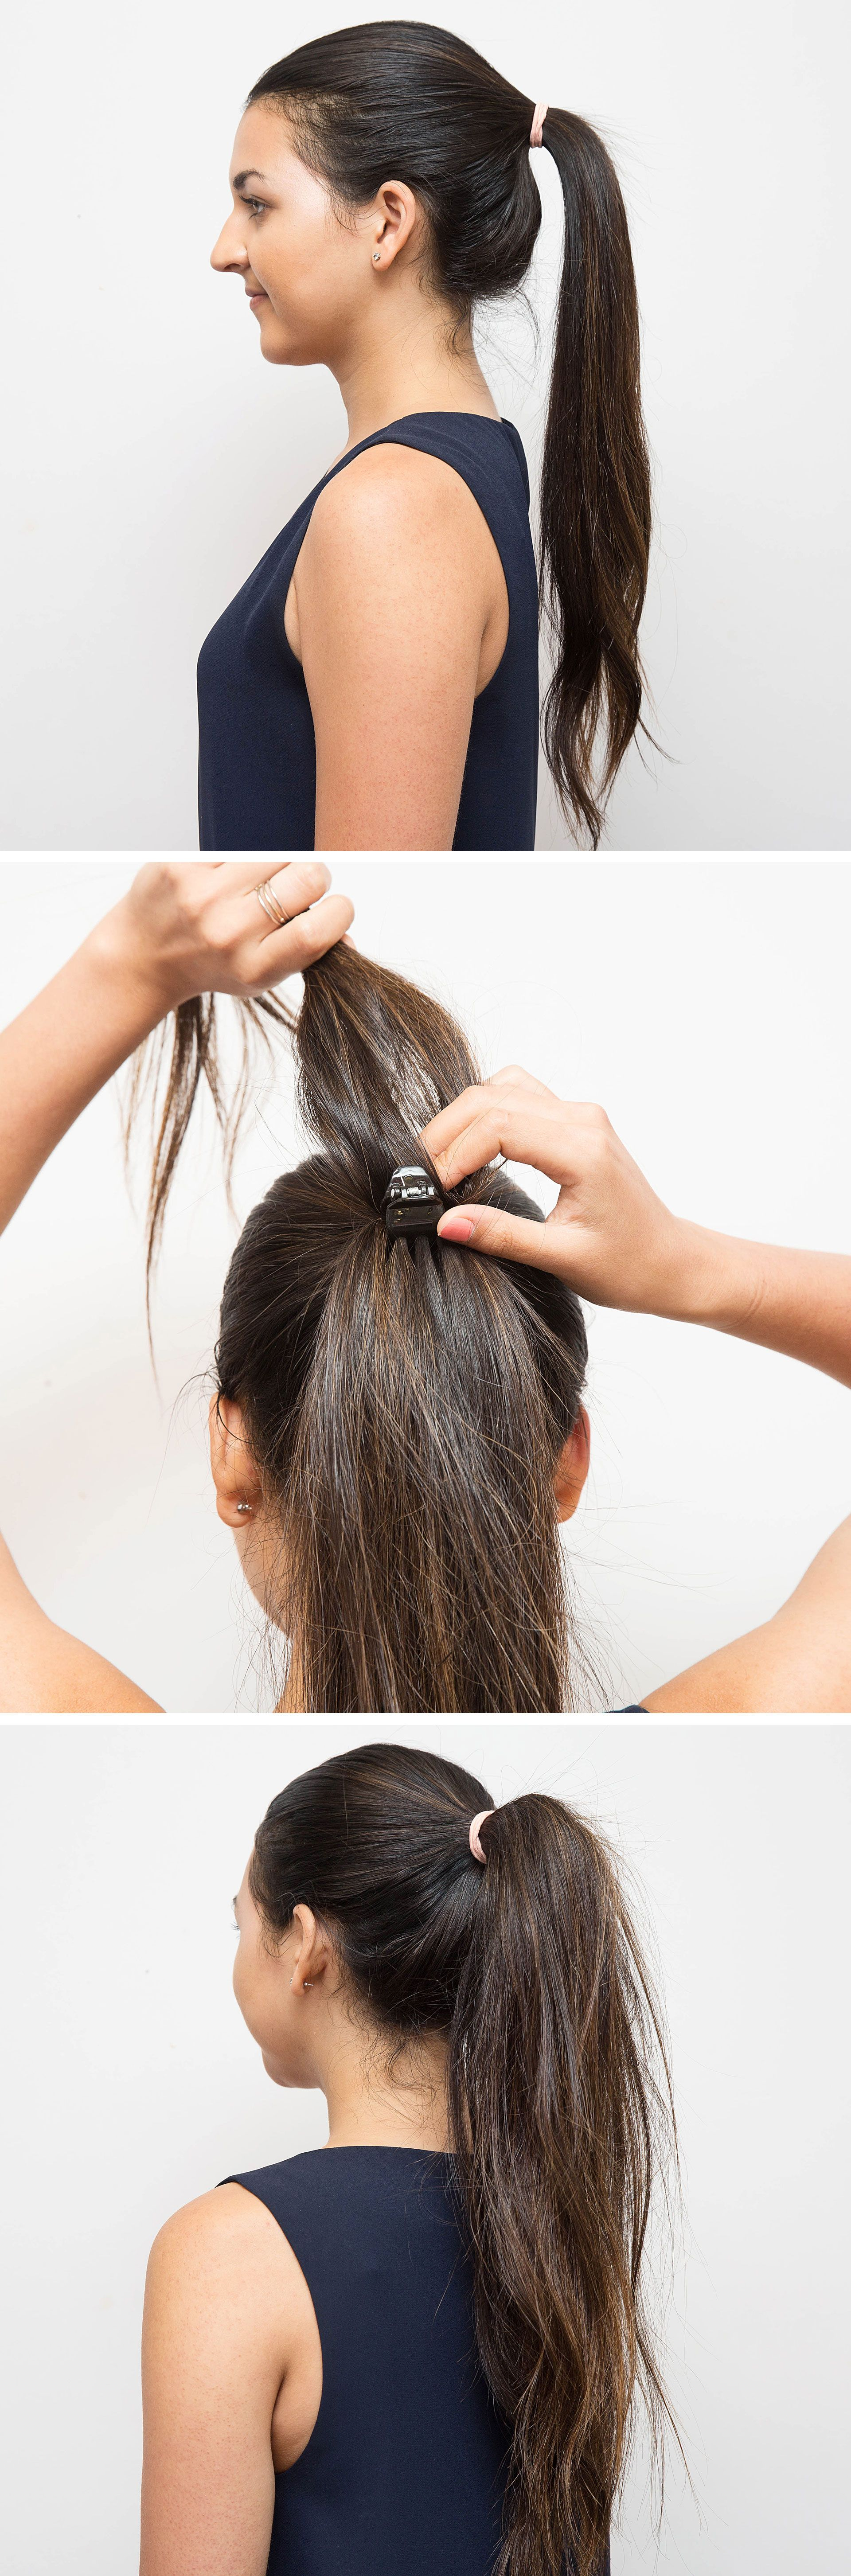 Forum on this topic: 9 Hair Hacks Thatll Finally Make Your , 9-hair-hacks-thatll-finally-make-your/